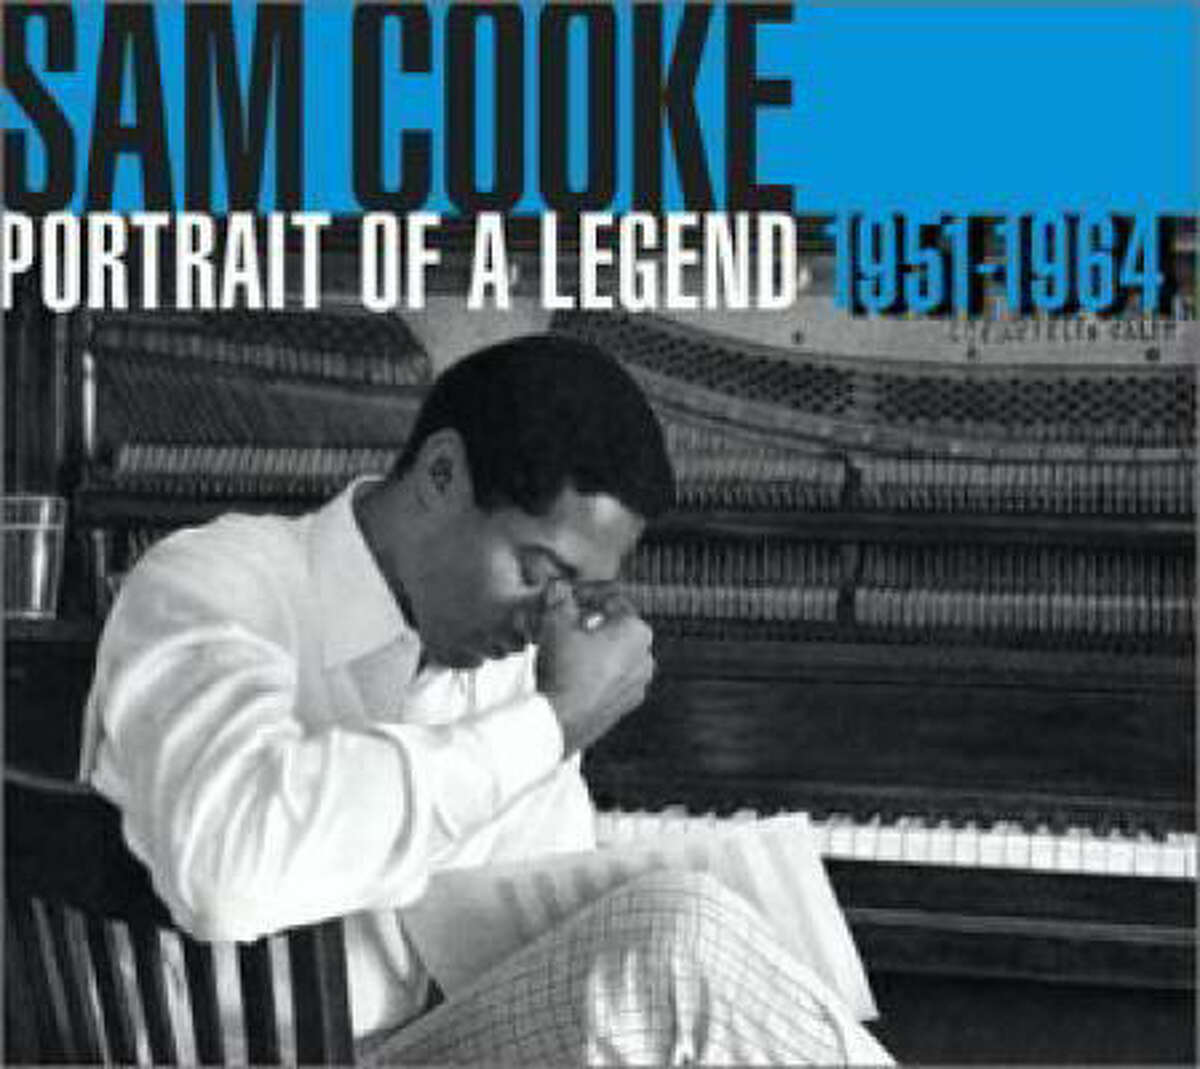 Artist: Sam Cooke Hear a sample. Agree or disagree? Tell us in the comments.